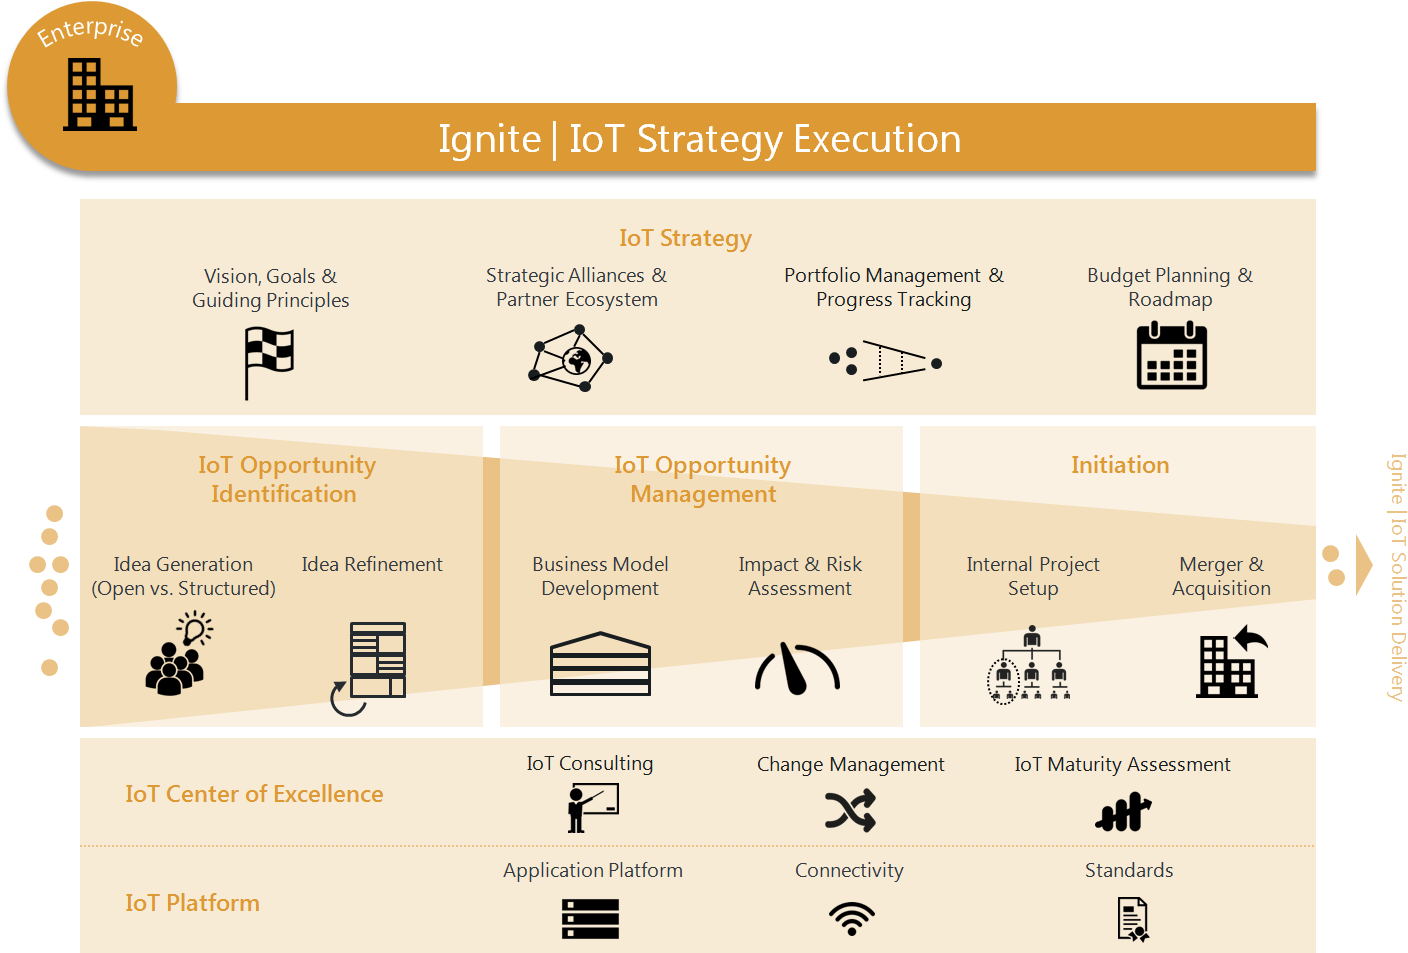 Figure: Ignite | IoT Strategy Execution